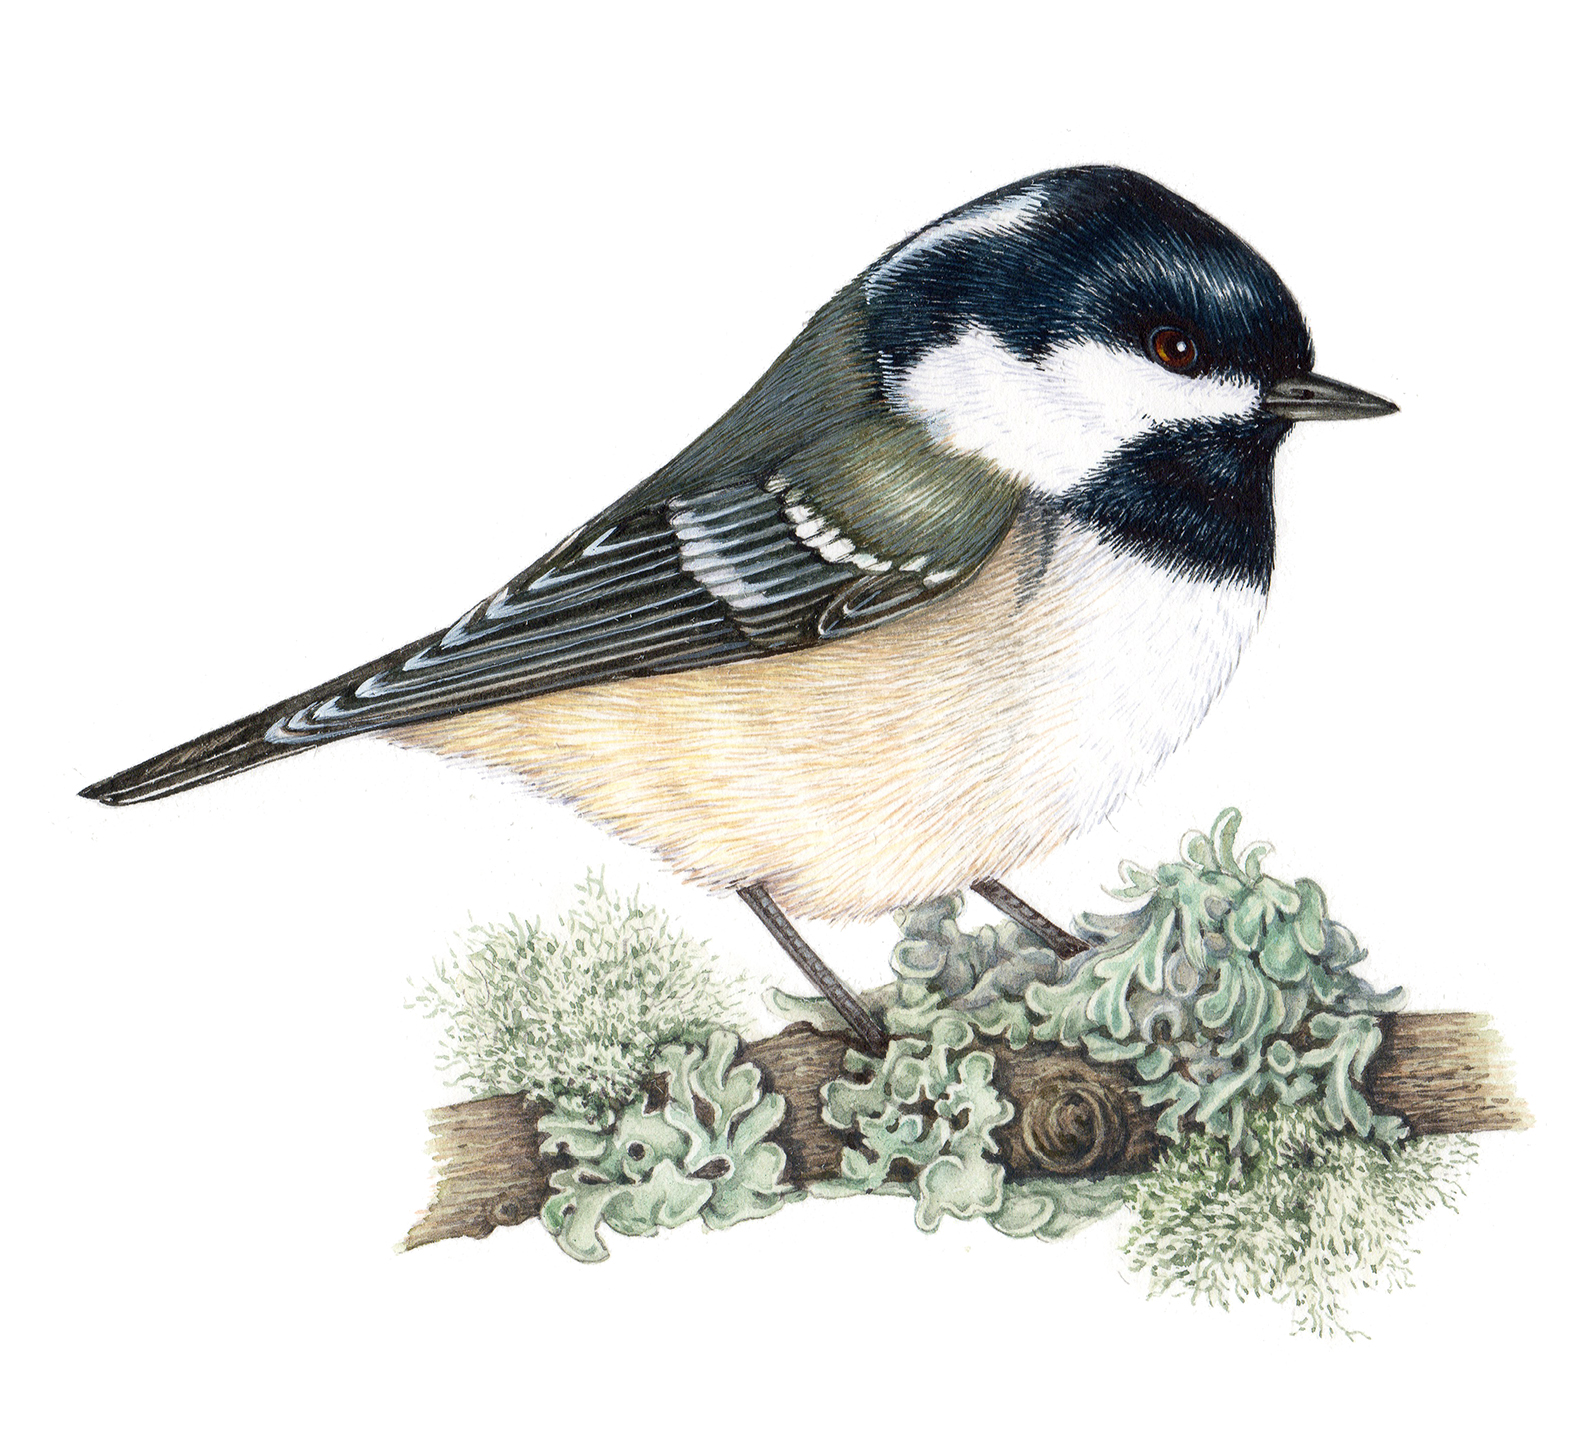 Coal tit Periparus ater natural history illustration by Lizzie Harper